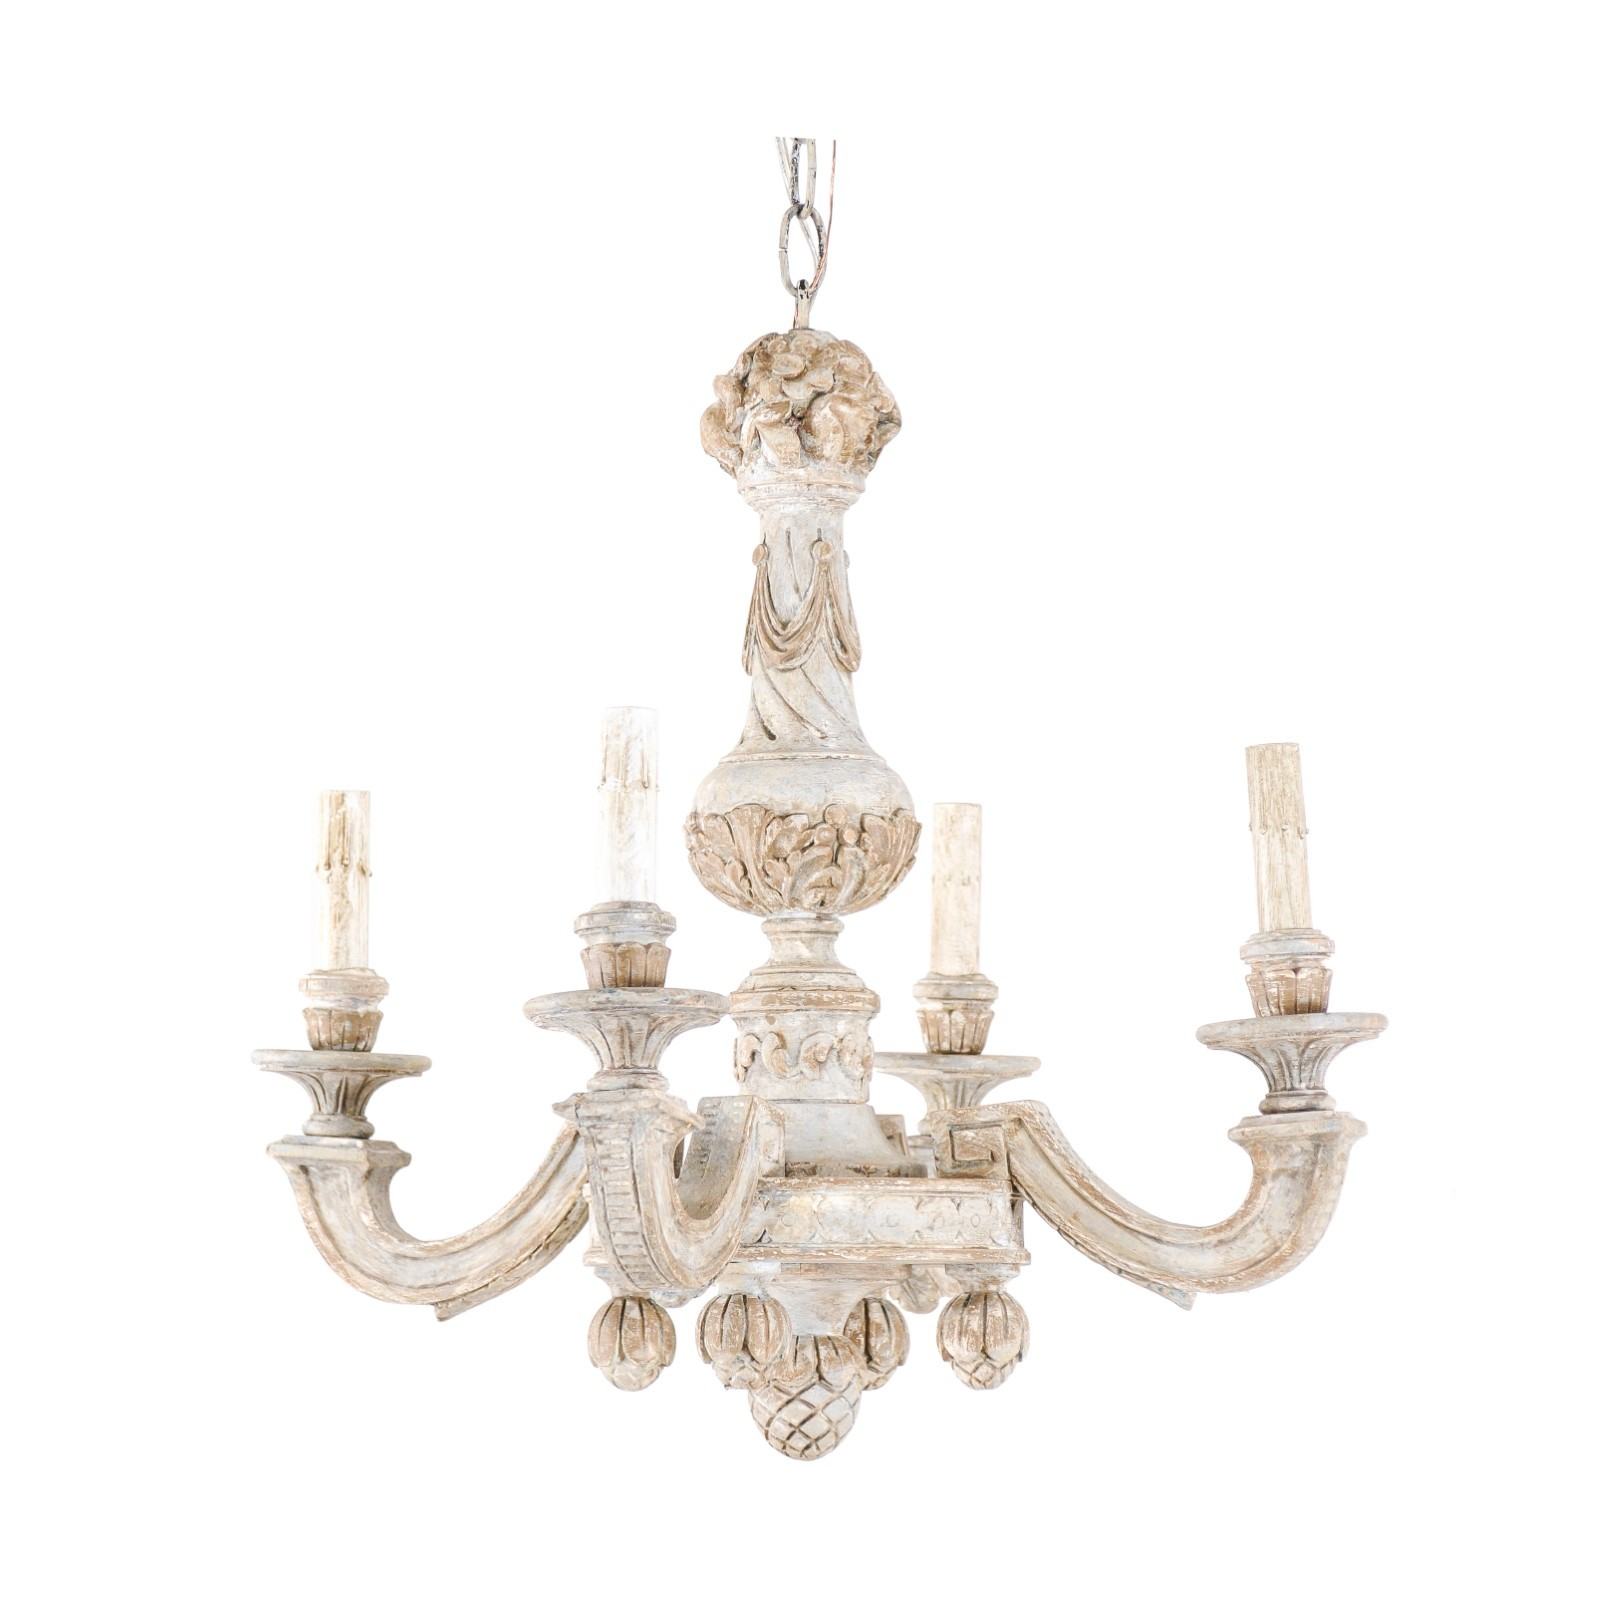 A Beautifully Carved French Chandelier